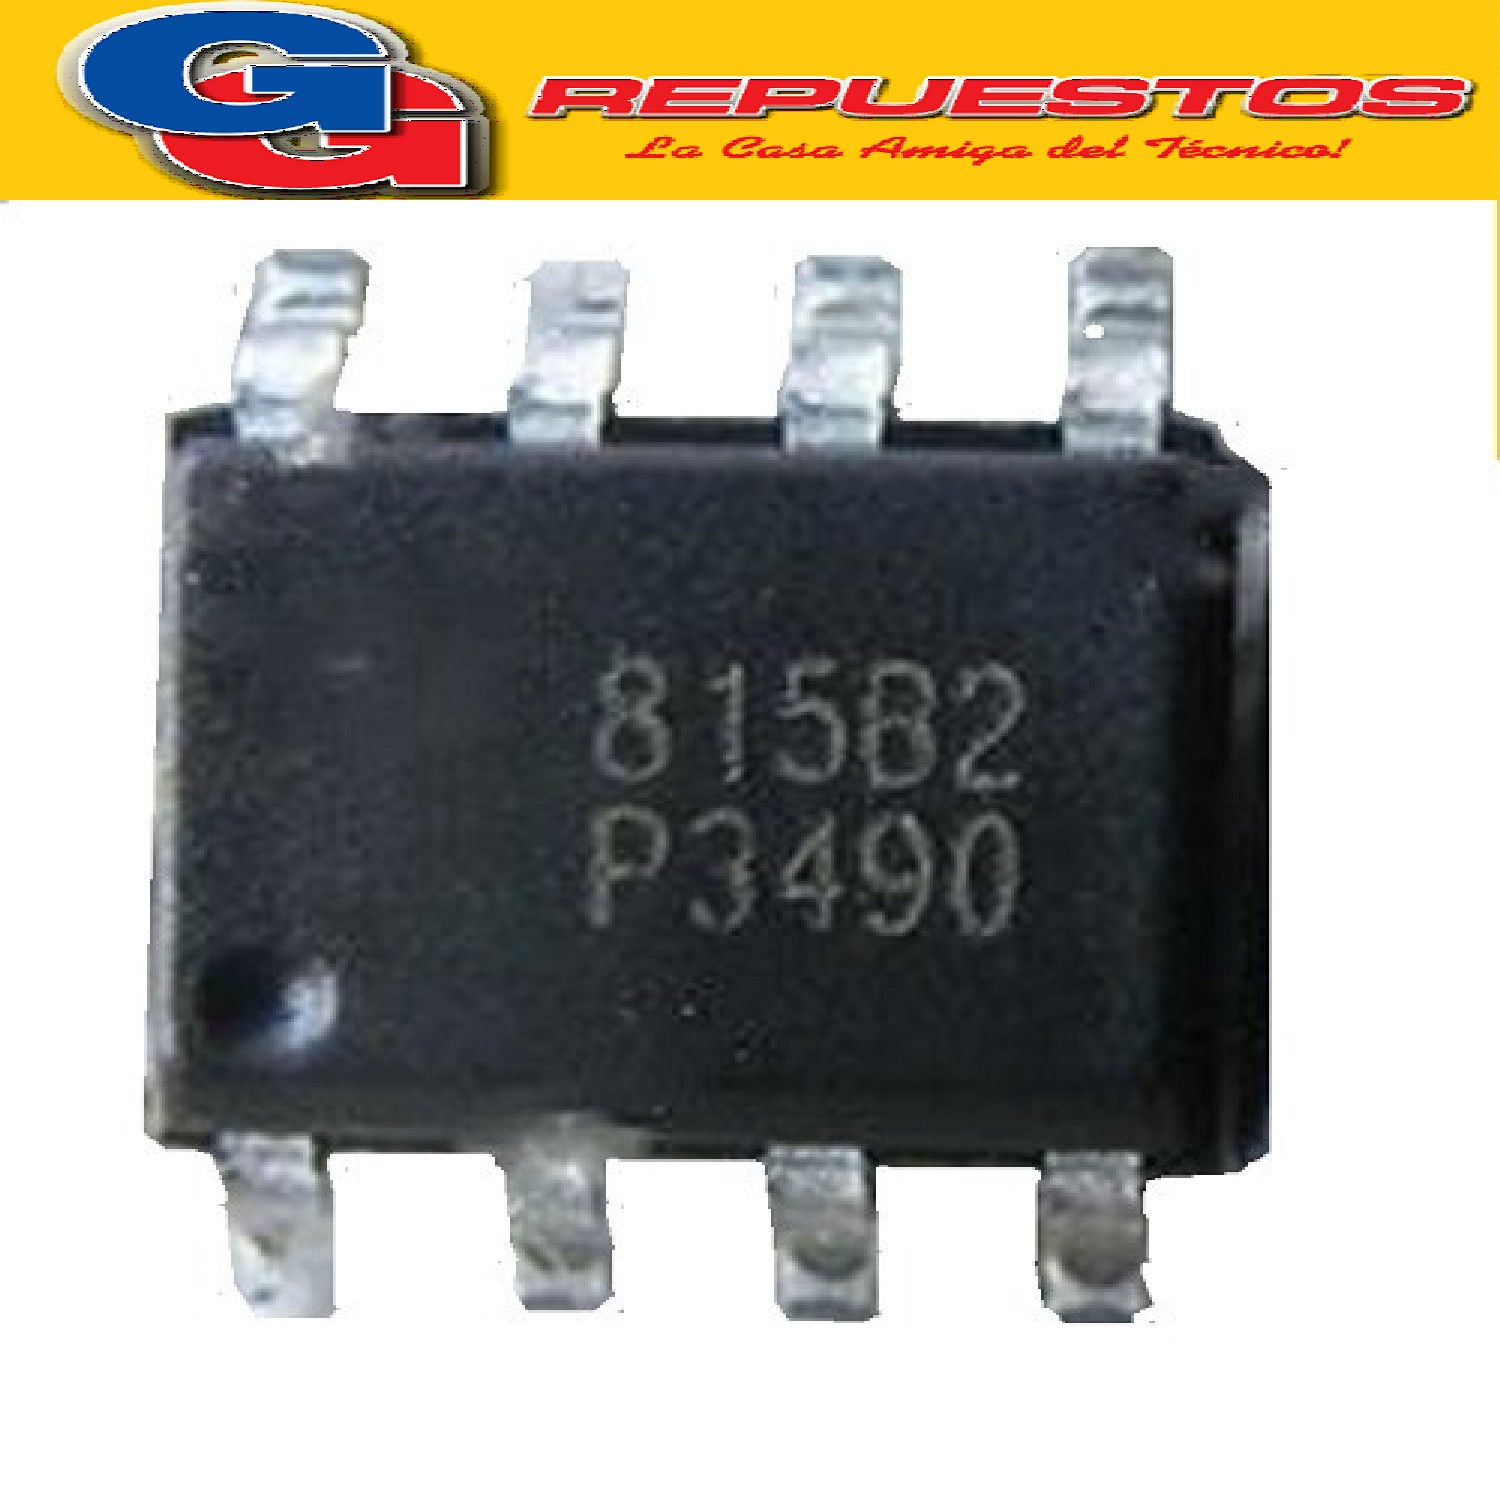 EUP3490 CIRCUITO INTEGRADO REGULADOR -SMD- (40V/3A/200KHZ)